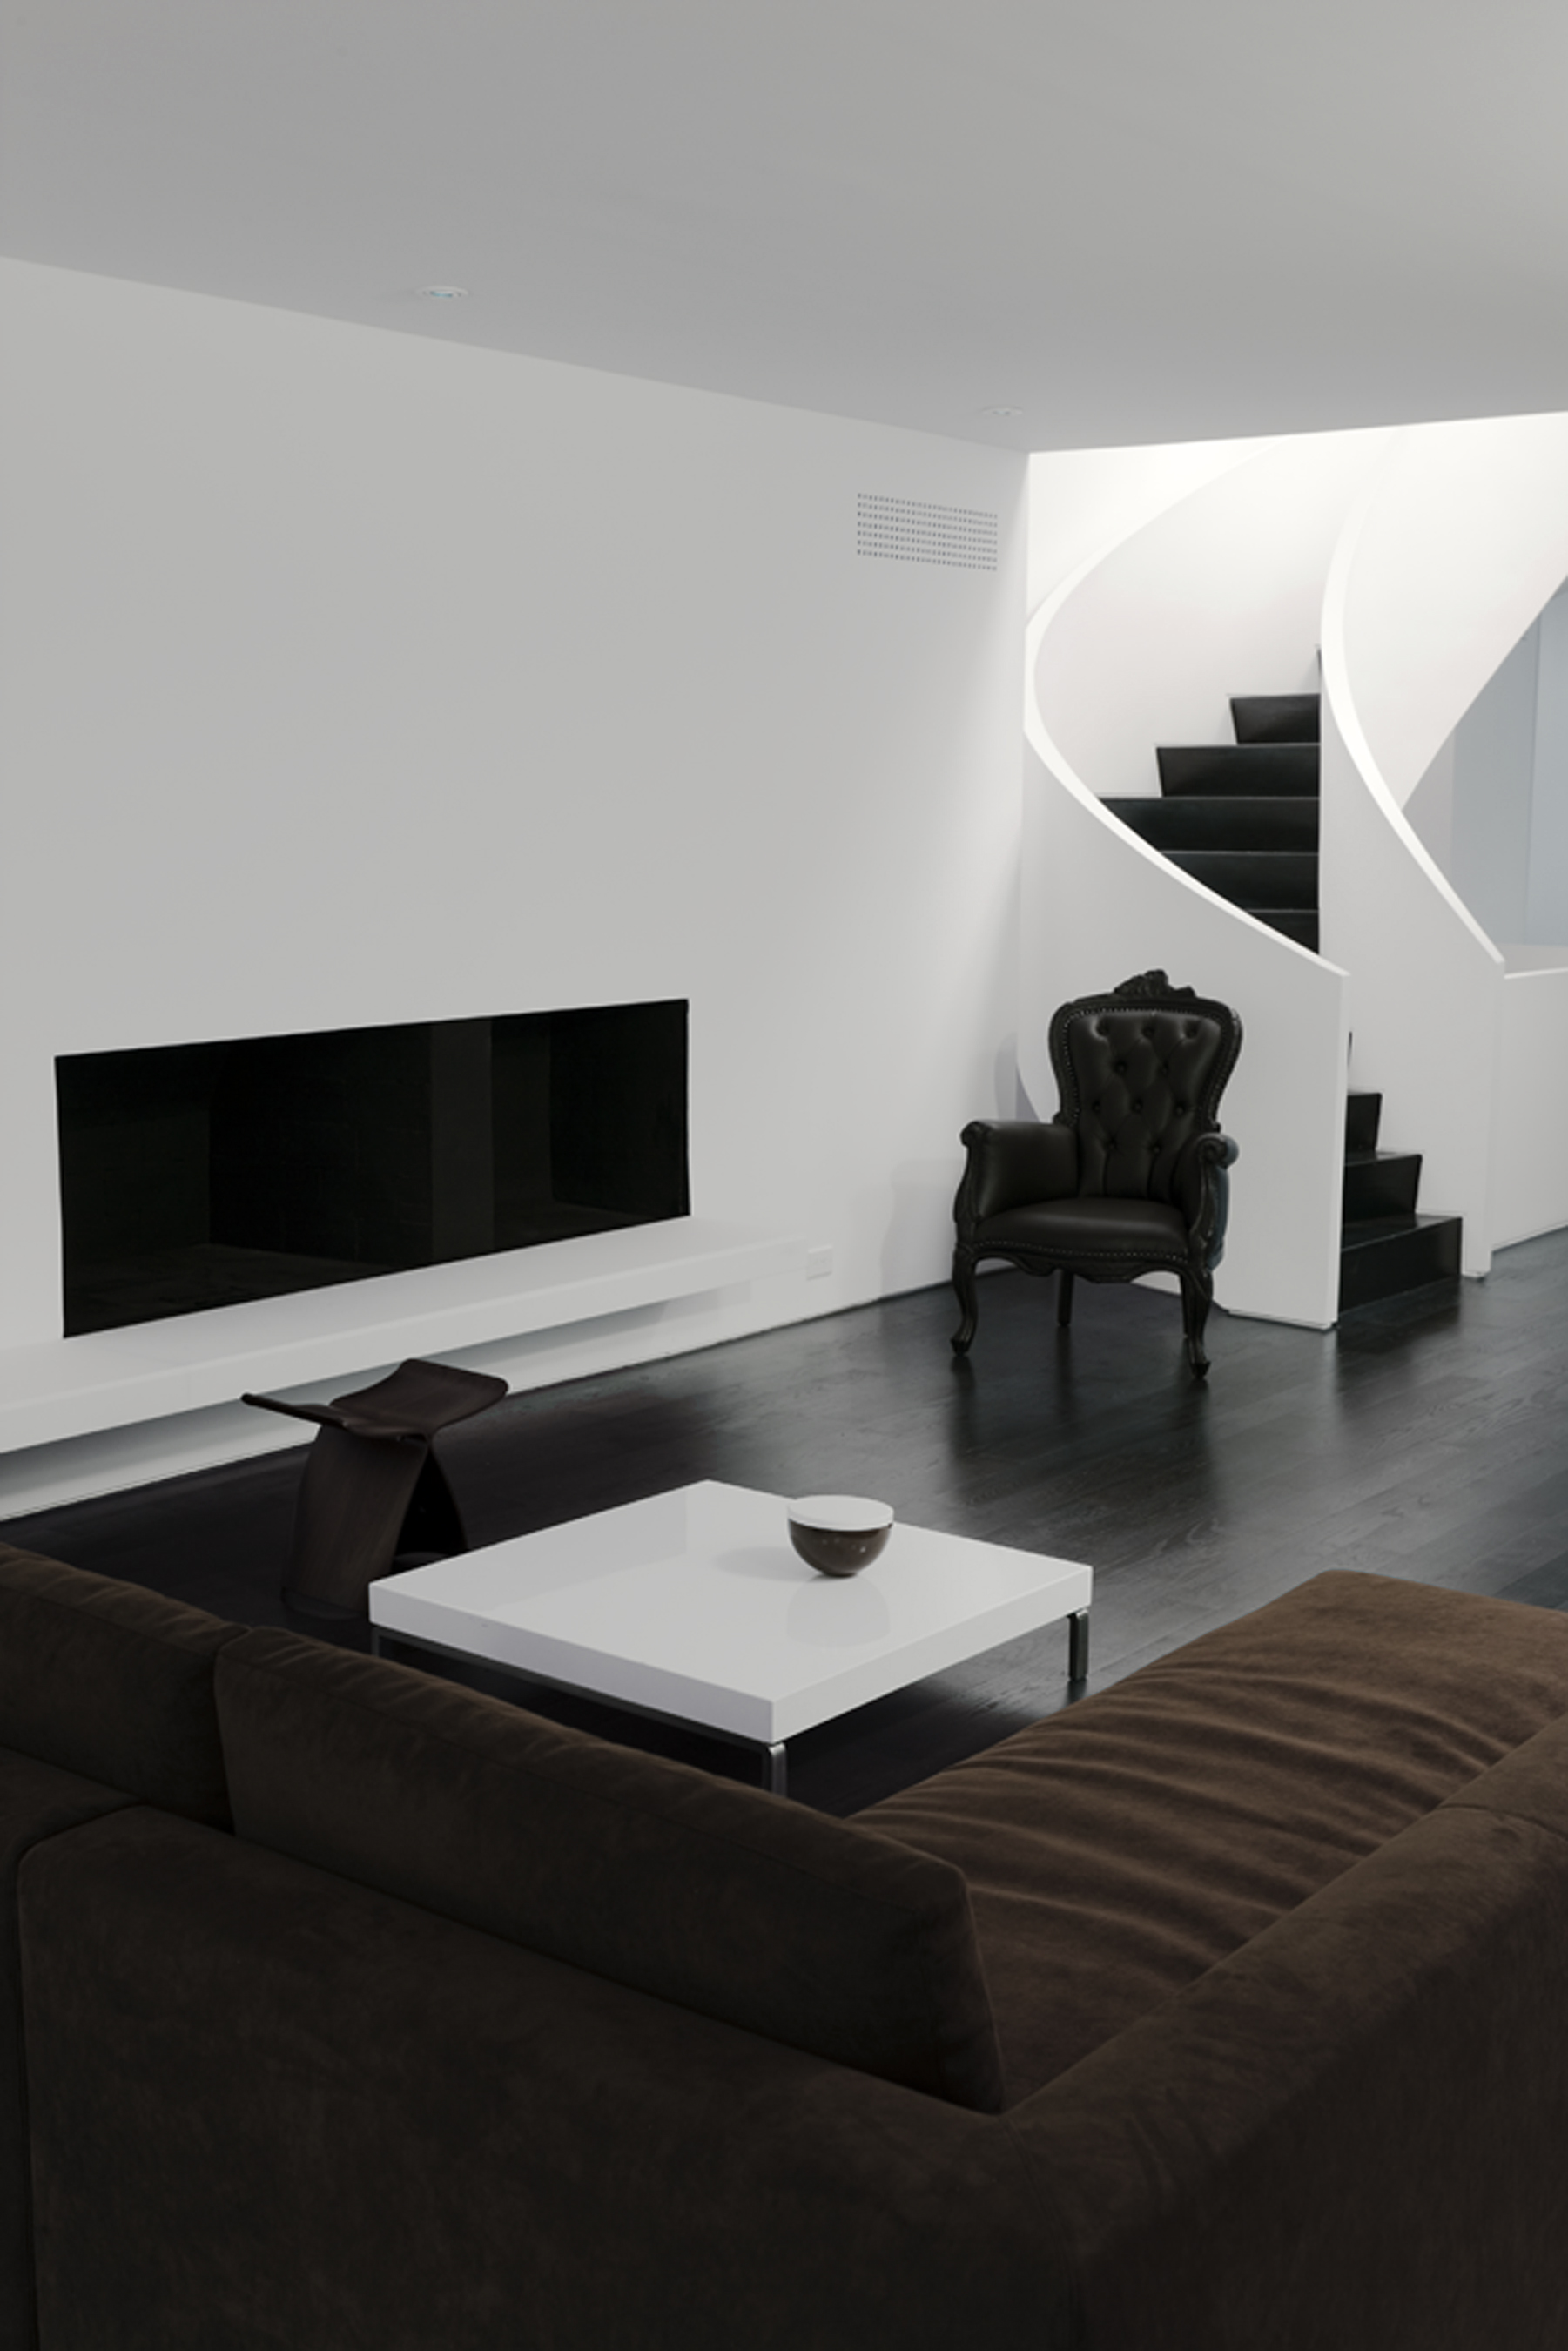 Copy of Russell Hill Road - Stair Curve White Couch Living Room